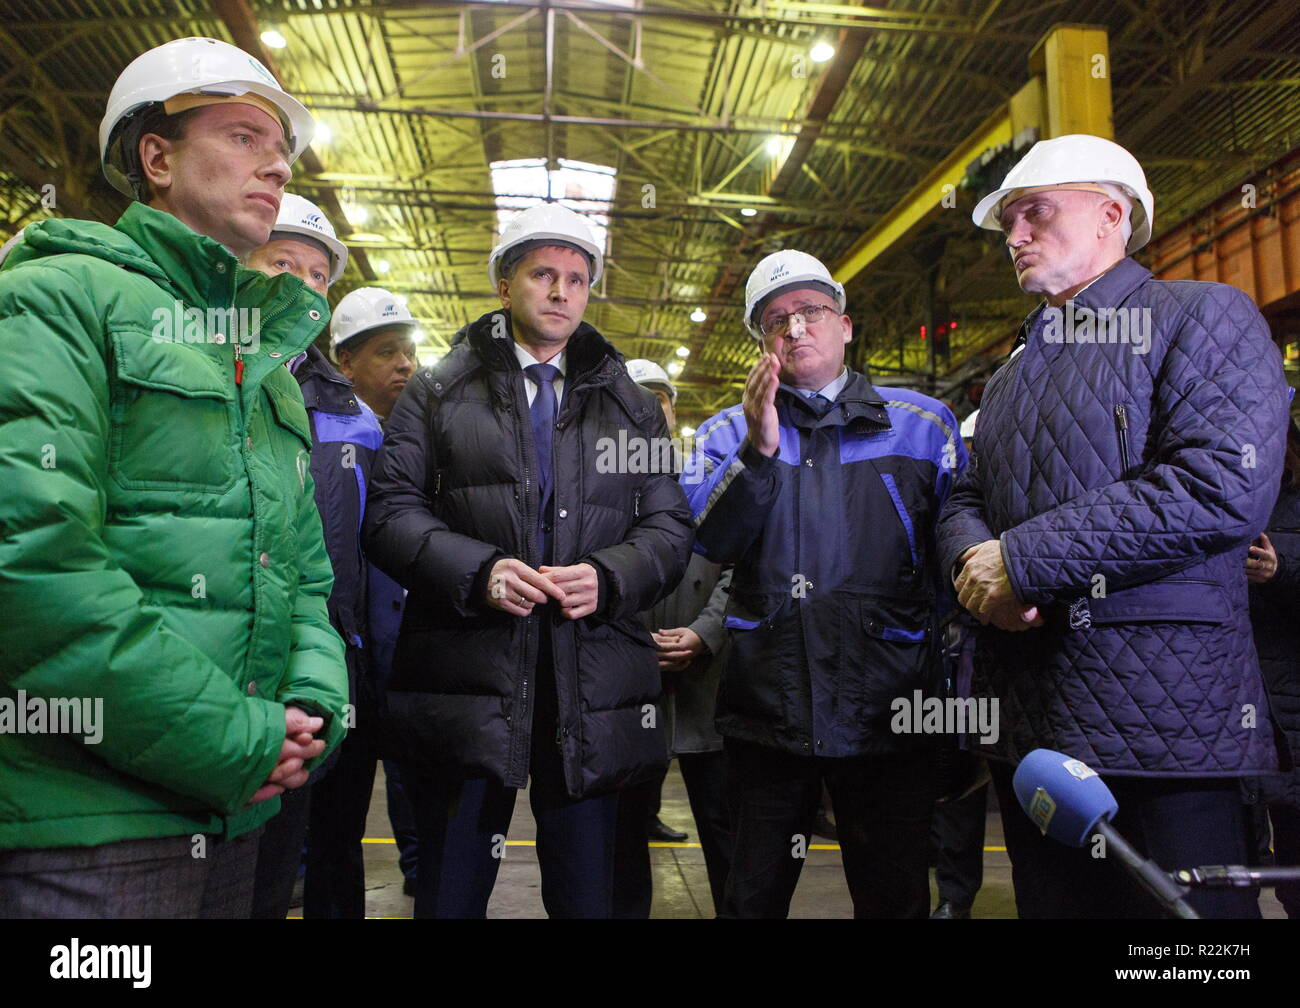 Chelyabinsk, Russia. 16th Nov, 2018. CHELYABINSK, RUSSIA - NOVEMBER 16, 2018: Russia's Minister of Natural Resources and Environment, Dmitry Kobylkin (3rd R), and Chelyabinsk Region Governor Boris Dubrovsky (R) visit Chelyabinsk Coke and Chemical Products Plant (Mechel Coke) owned by Mechel, a major producer of metallurgical coal. Nail Fattakhov/TASS Credit: ITAR-TASS News Agency/Alamy Live News - Stock Image